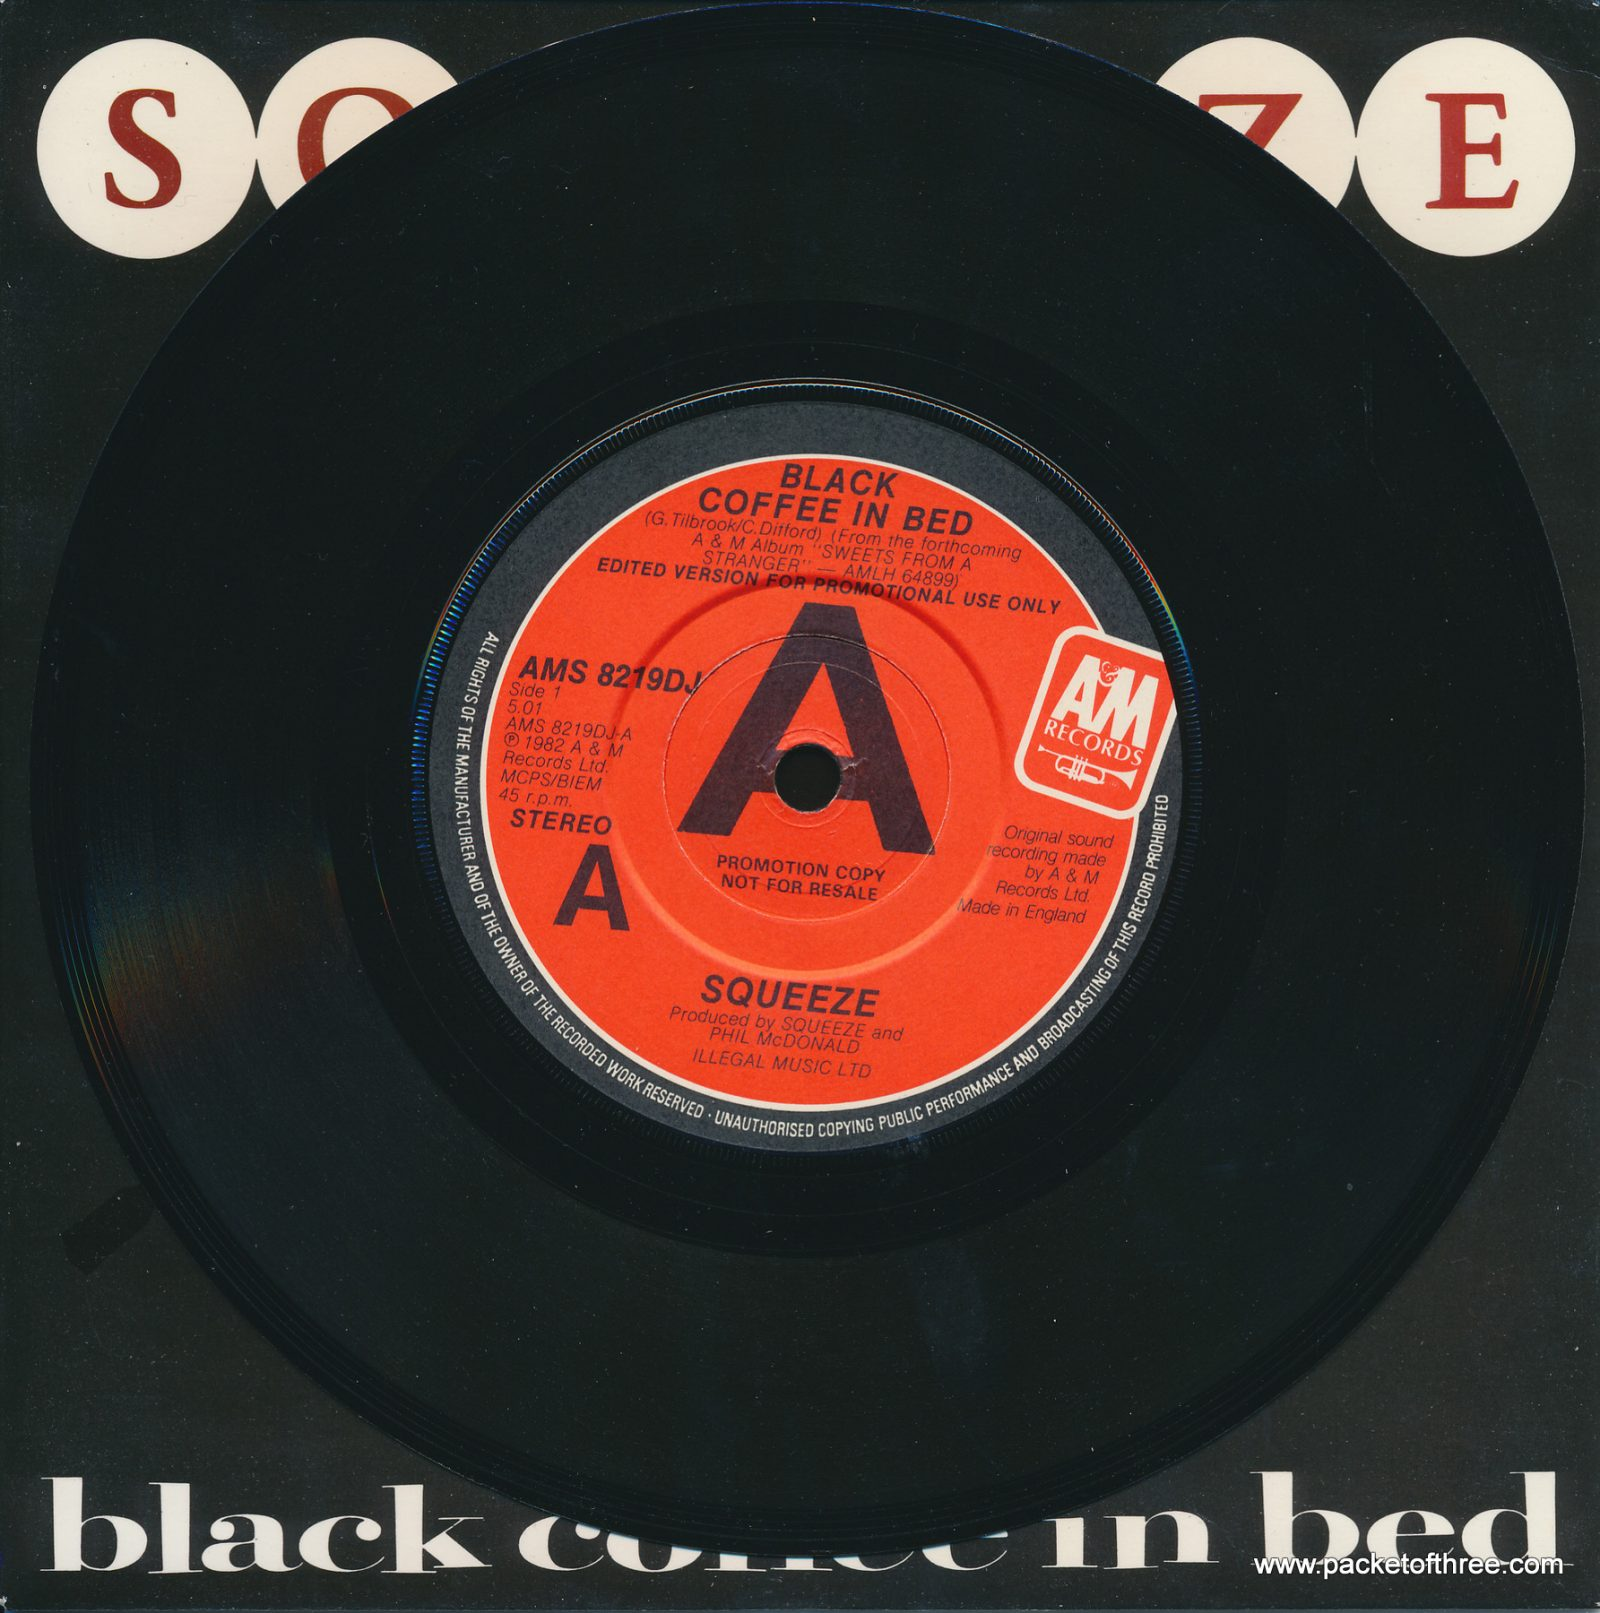 "Black Coffee In Bed - UK - 7"" - picture sleeve - promotional copy"